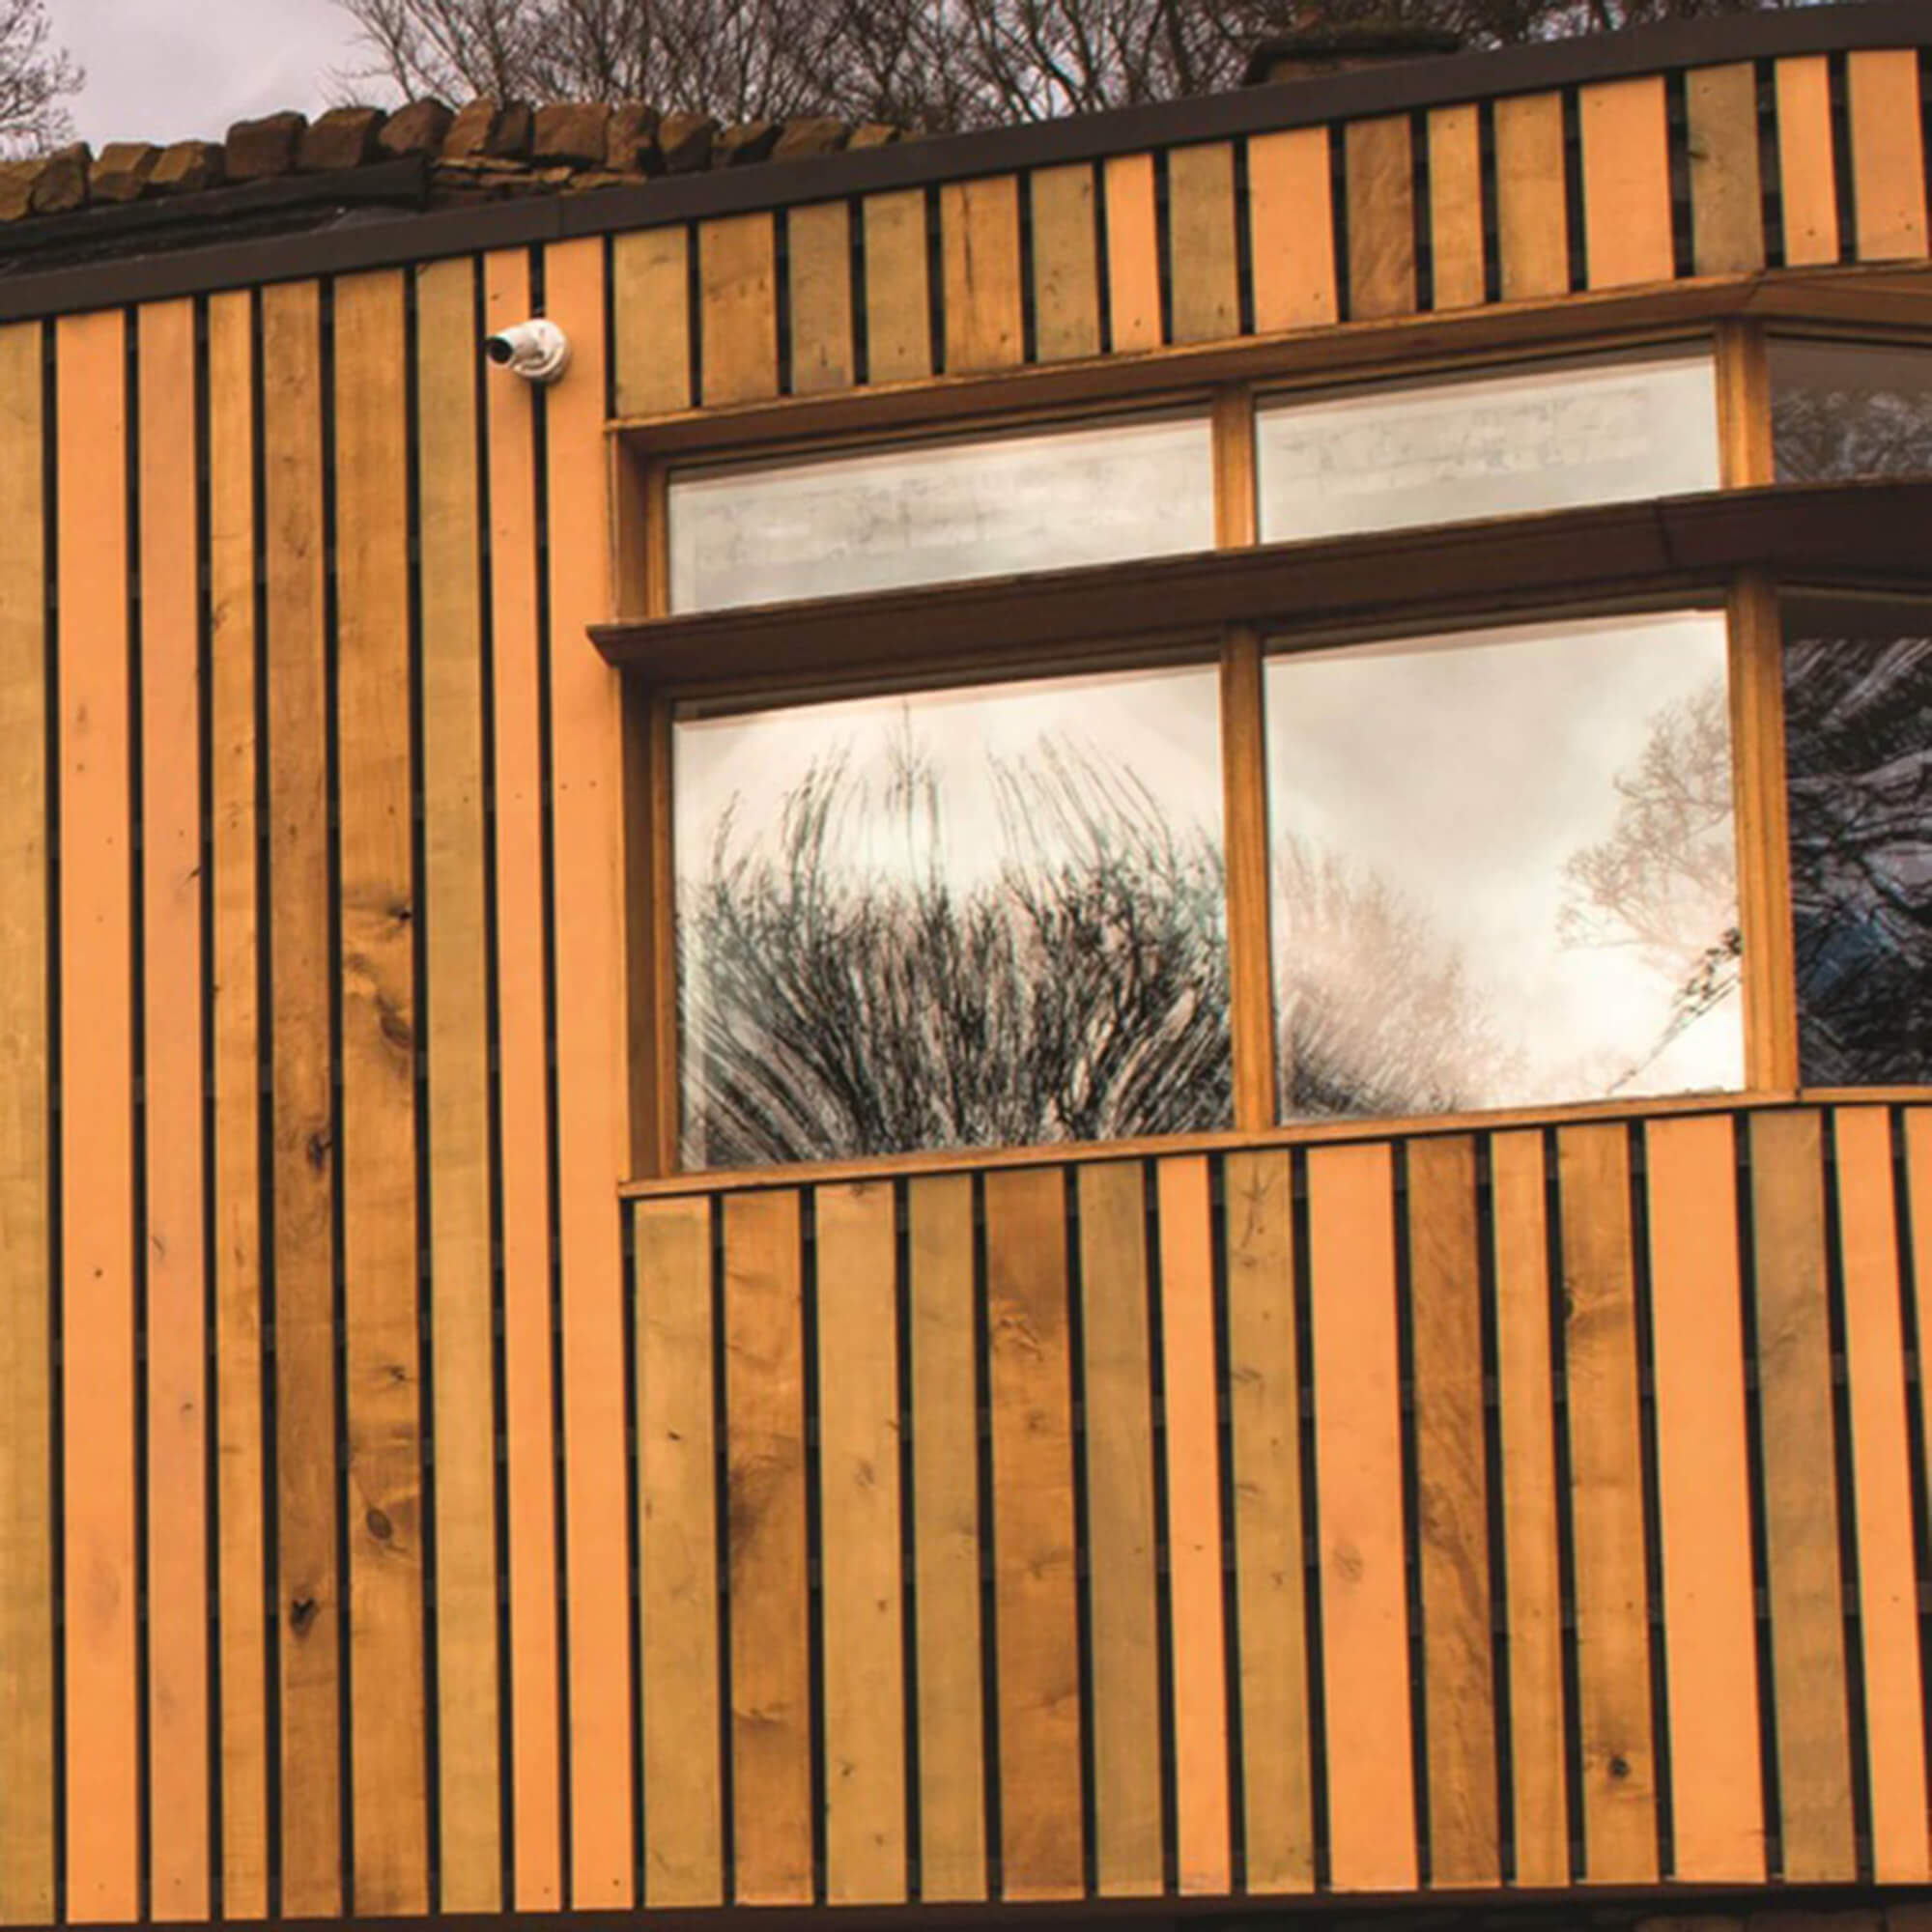 the side of sustainable house showing the wooden breathable wall